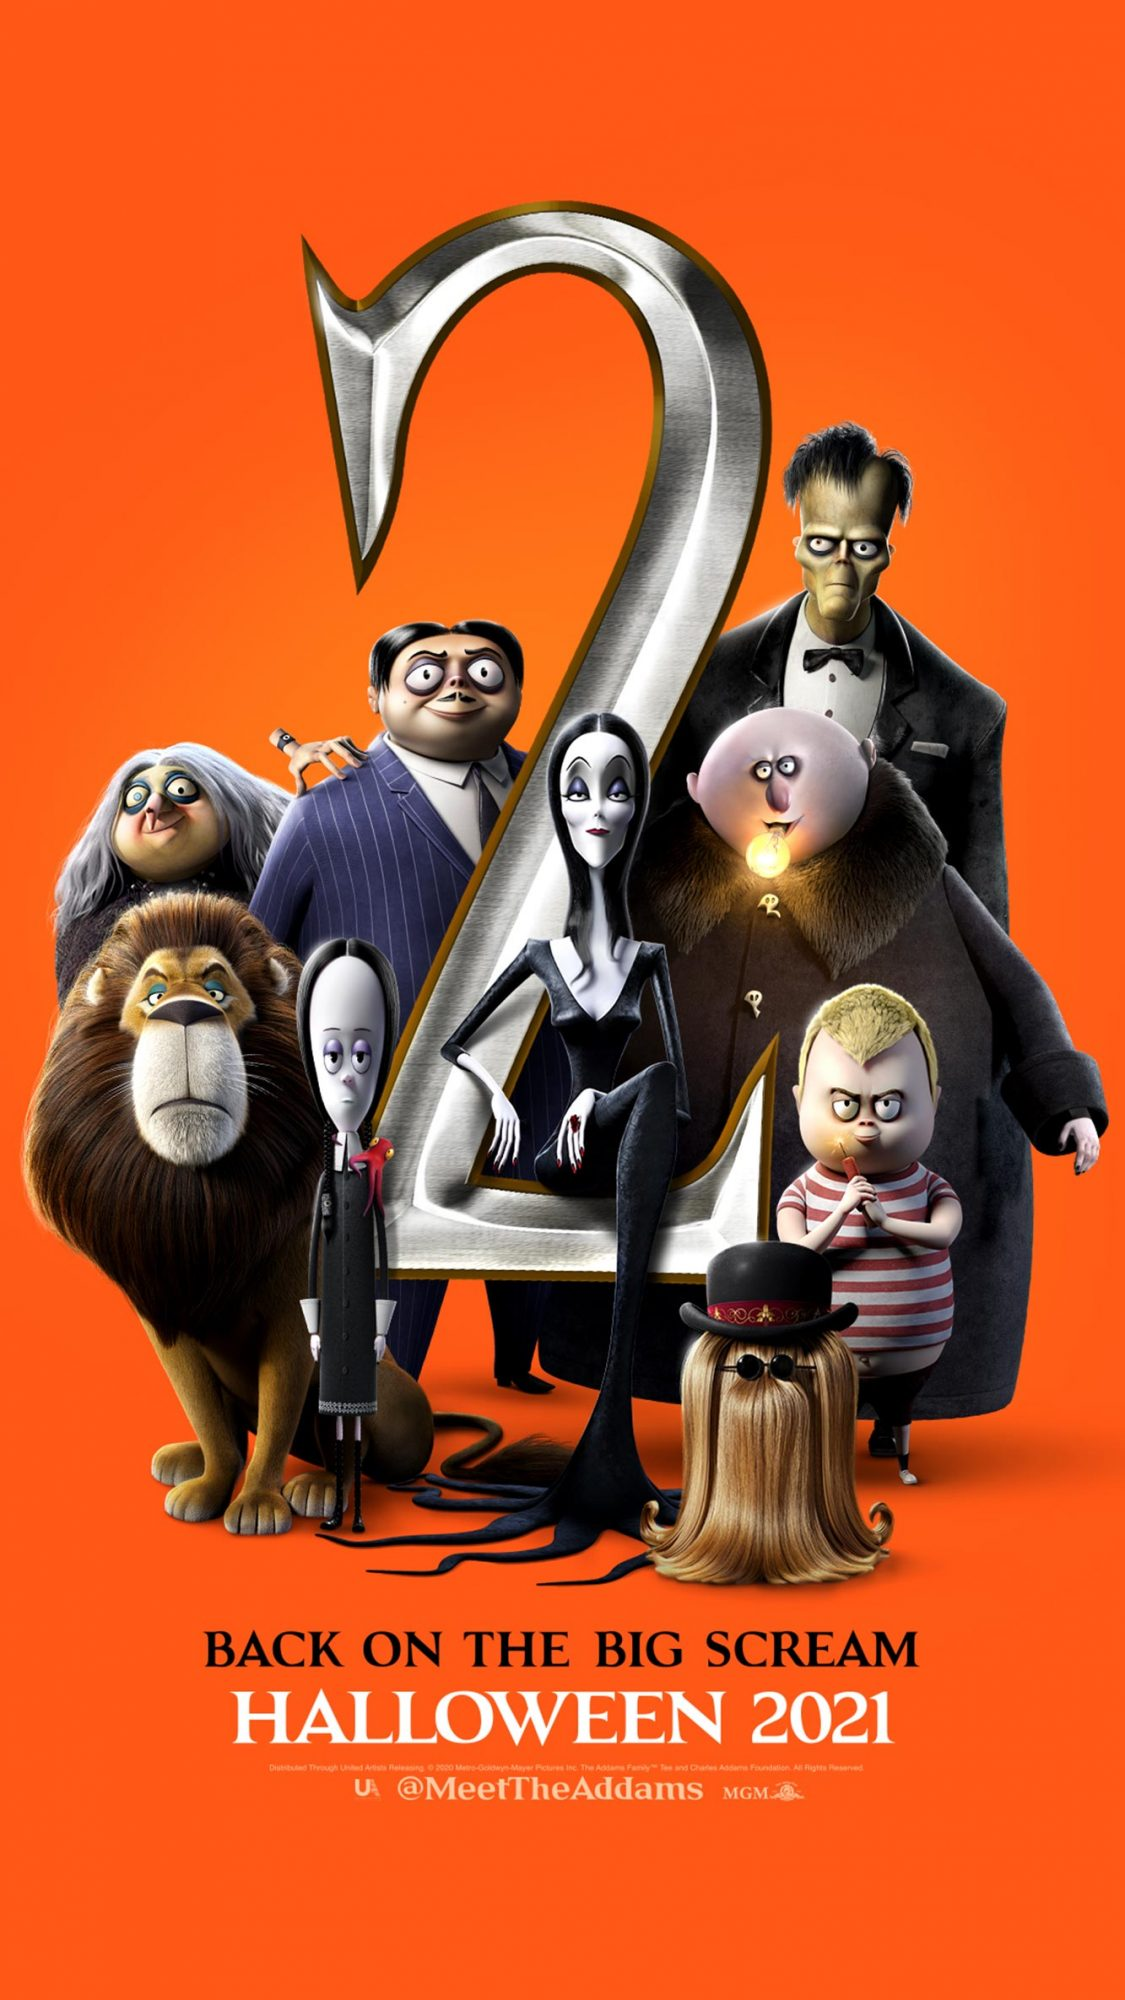 Halloween 2020 Trailer 2 Release Date The Addams Family 2 Debuts Teaser Trailer, Poster with 2021